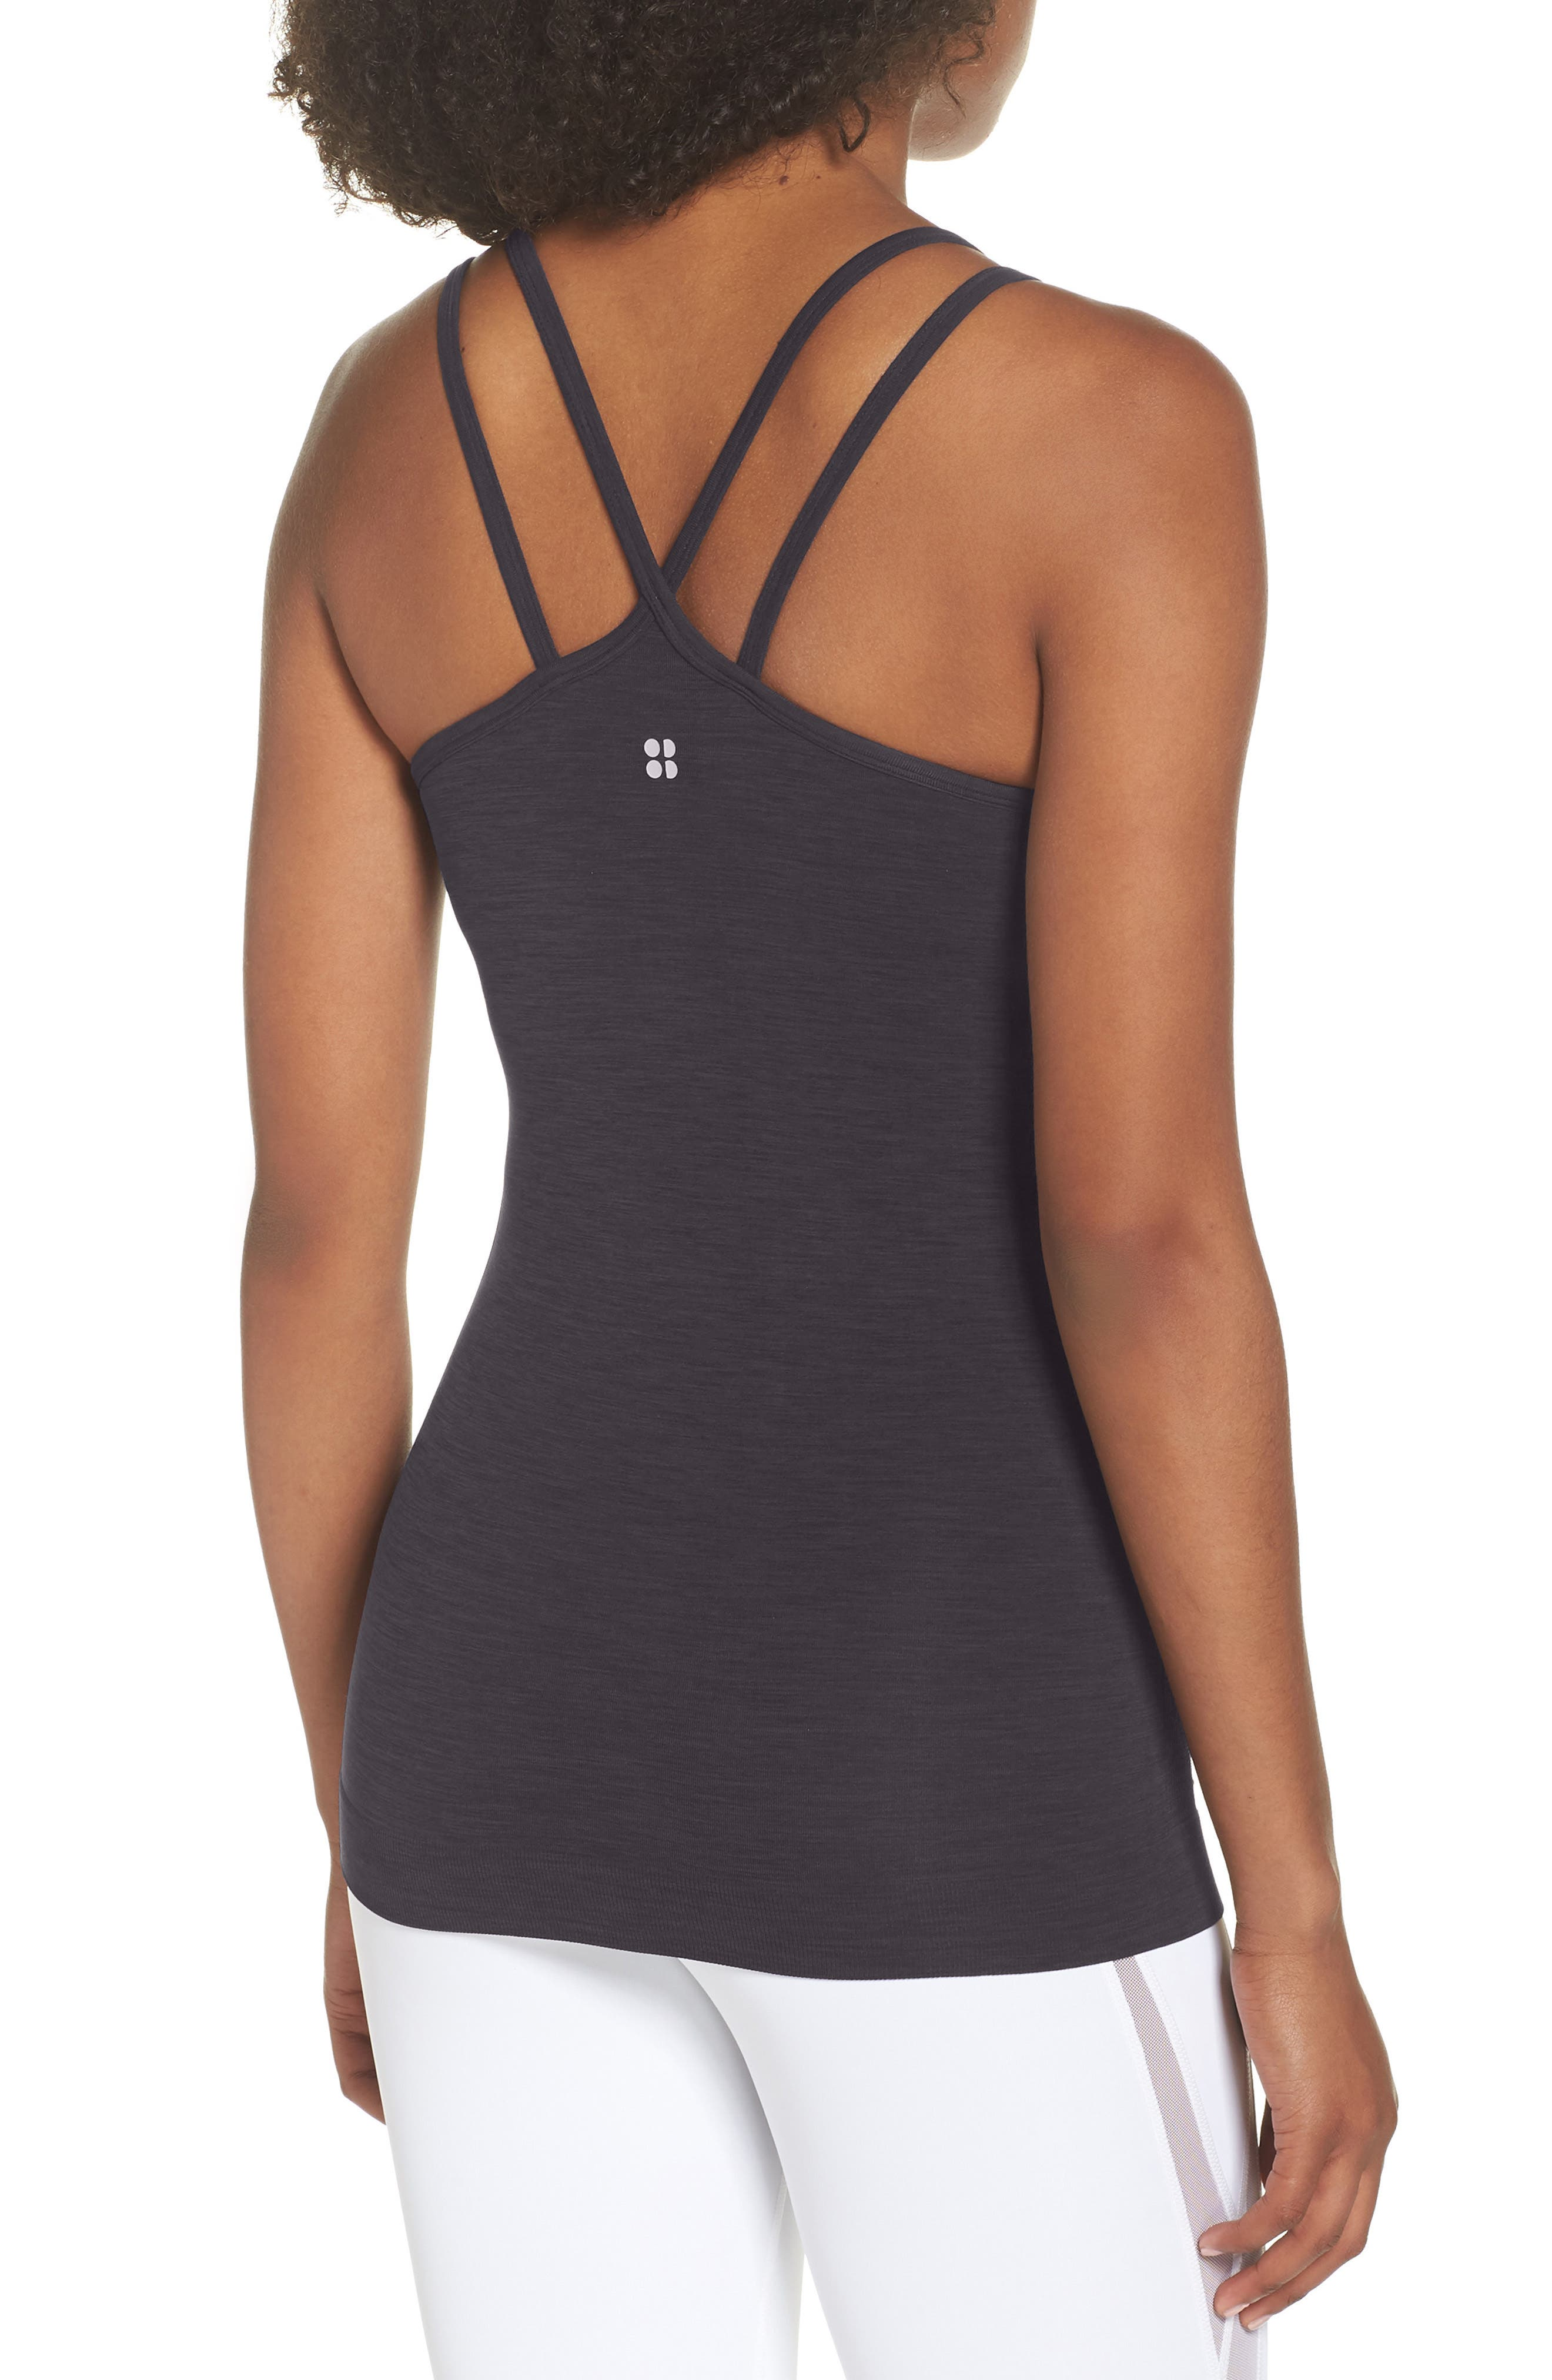 Namaska Yoga Tank,                             Alternate thumbnail 3, color,